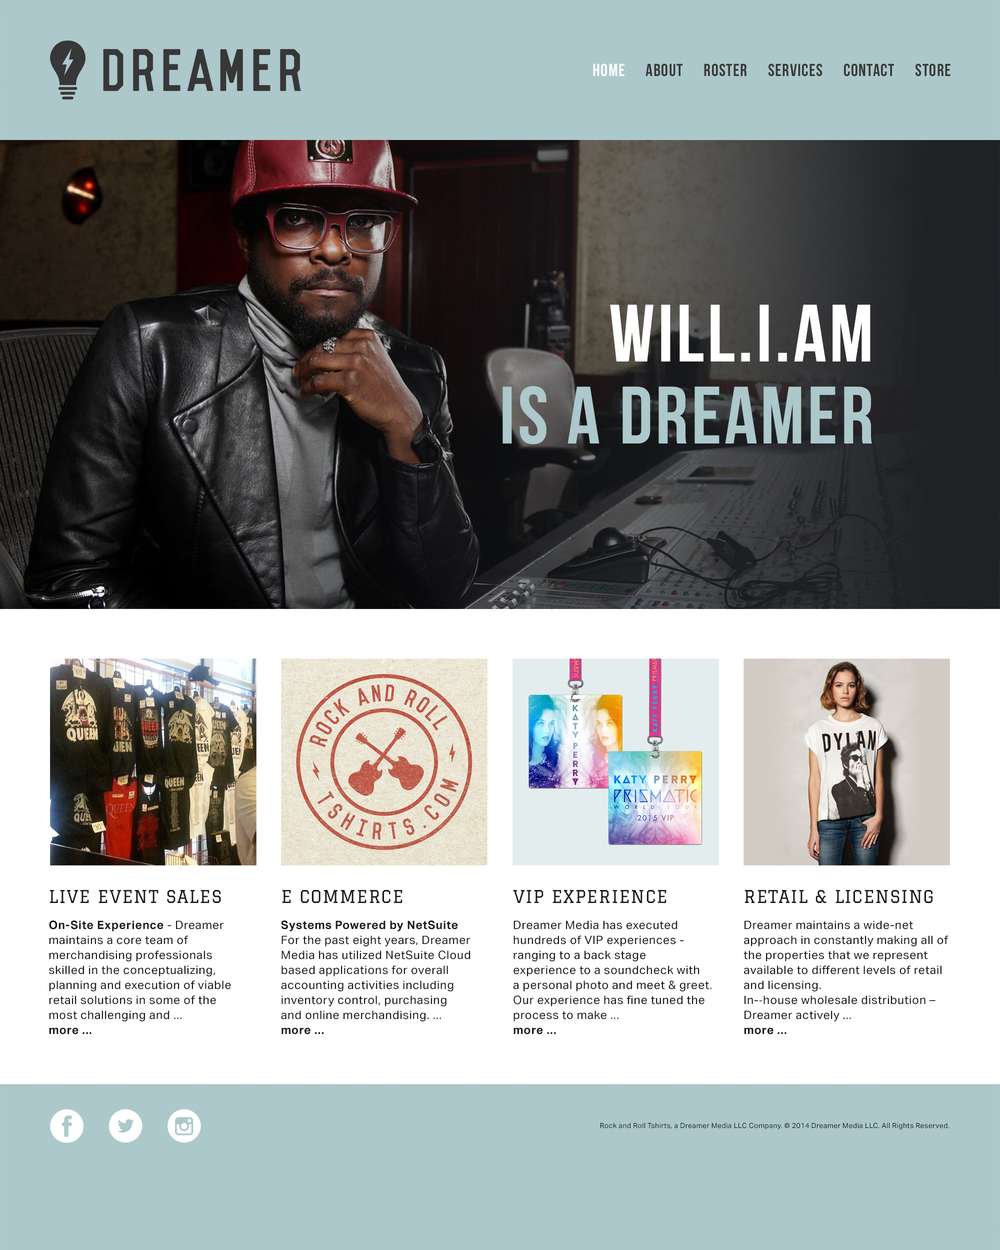 HEADER: WILL.I.AM